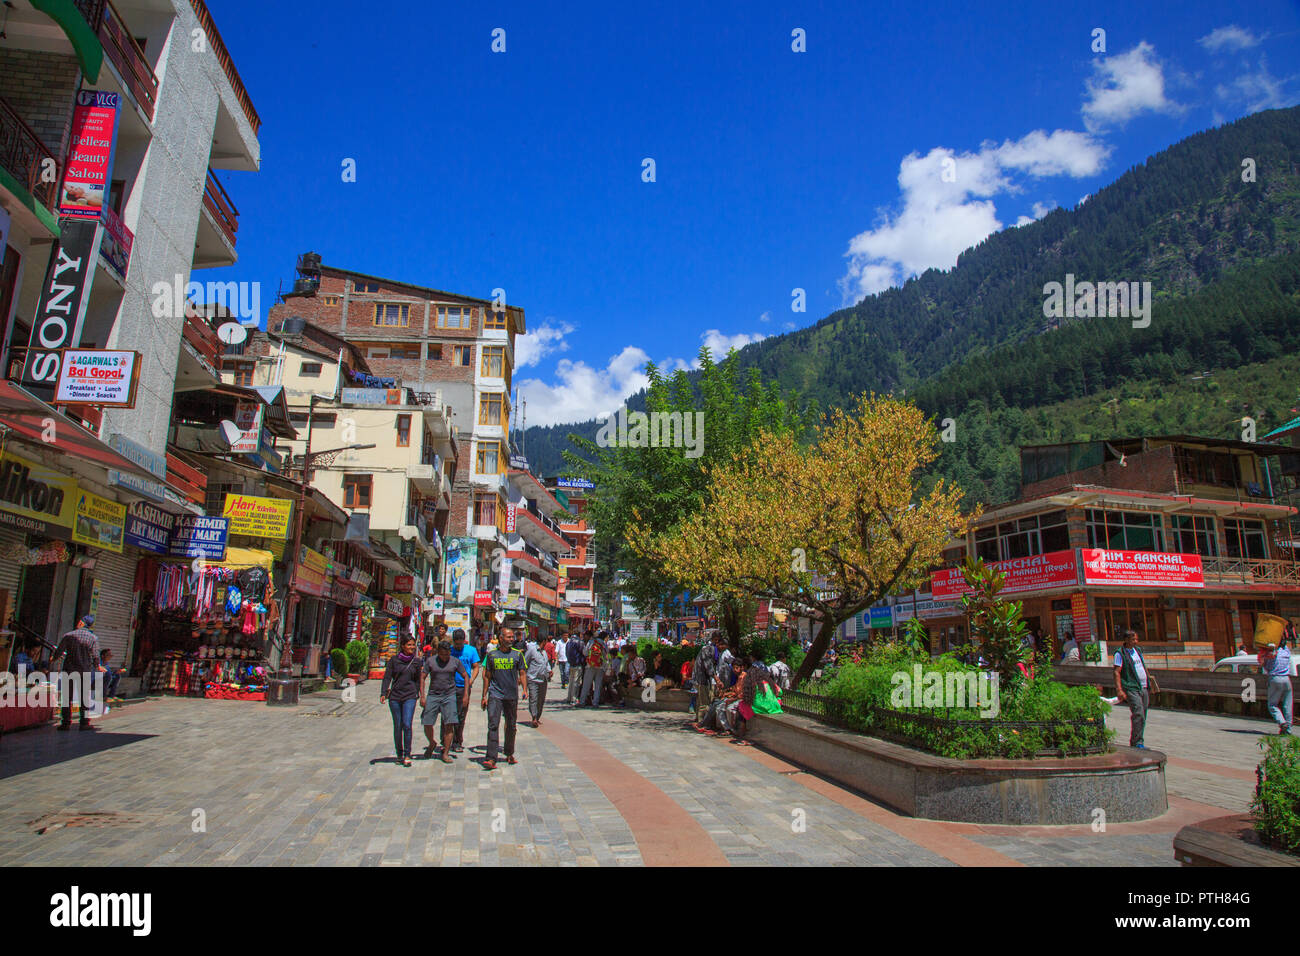 Manali Mall - Himachal Pradesh, India - Stock Image